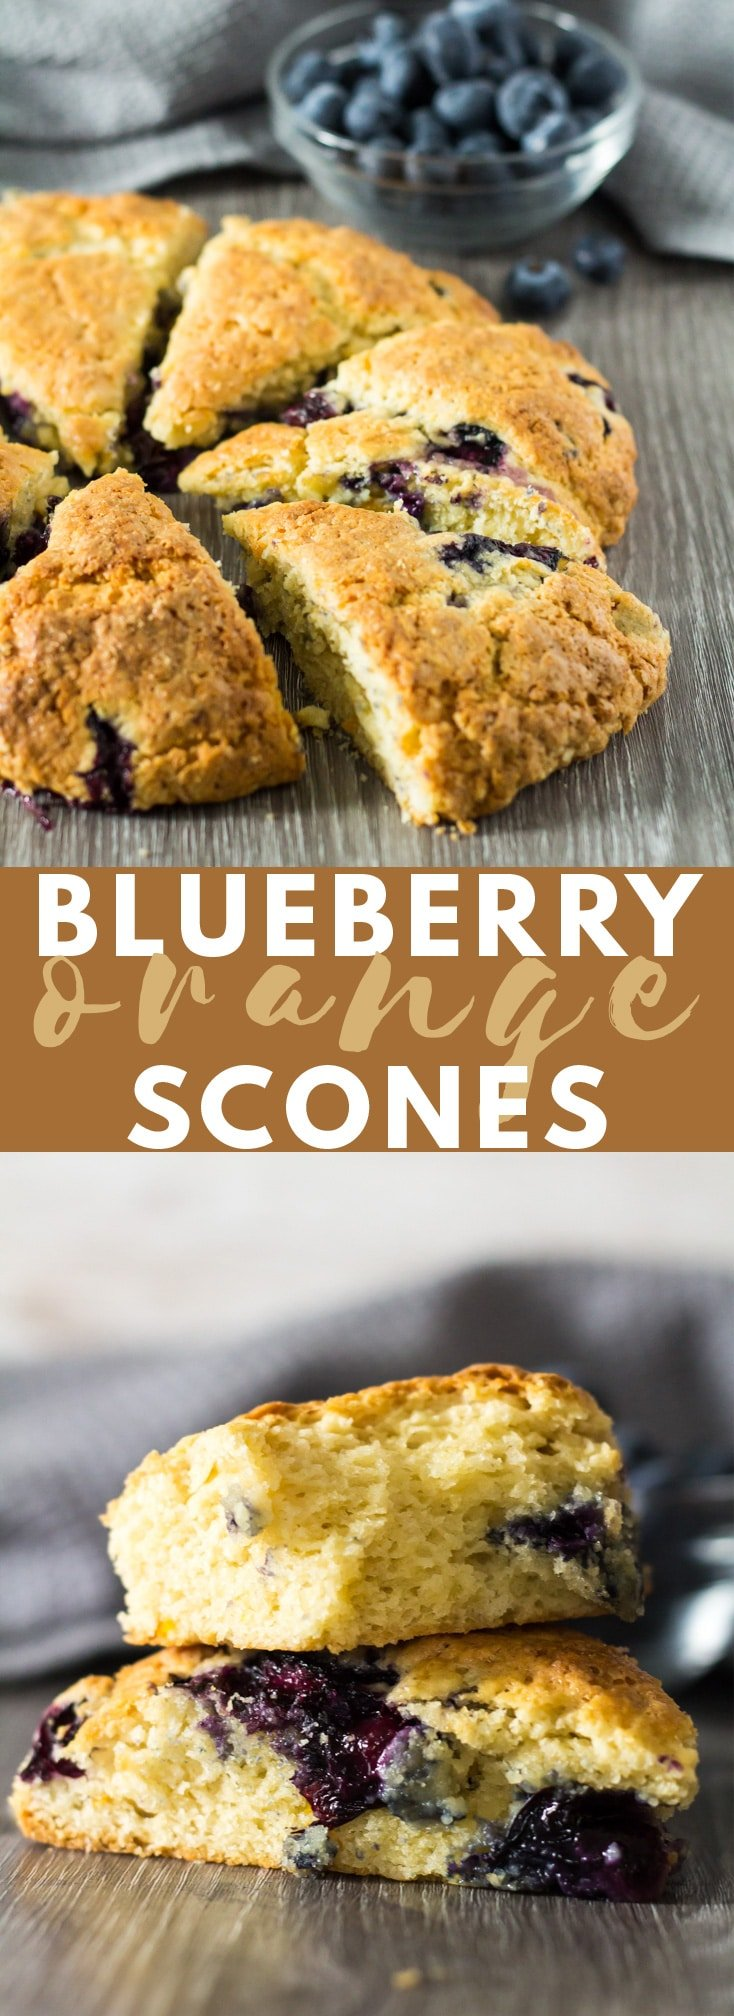 Blueberry Orange Scones - These orange-infused scones are deliciously soft on the inside, crispy on the outside, and stuffed full of fresh blueberries! #blueberryscones #blueberry #scones #sconerecipes #breadrecipes #breakfast #breakfastrecipes #recipe